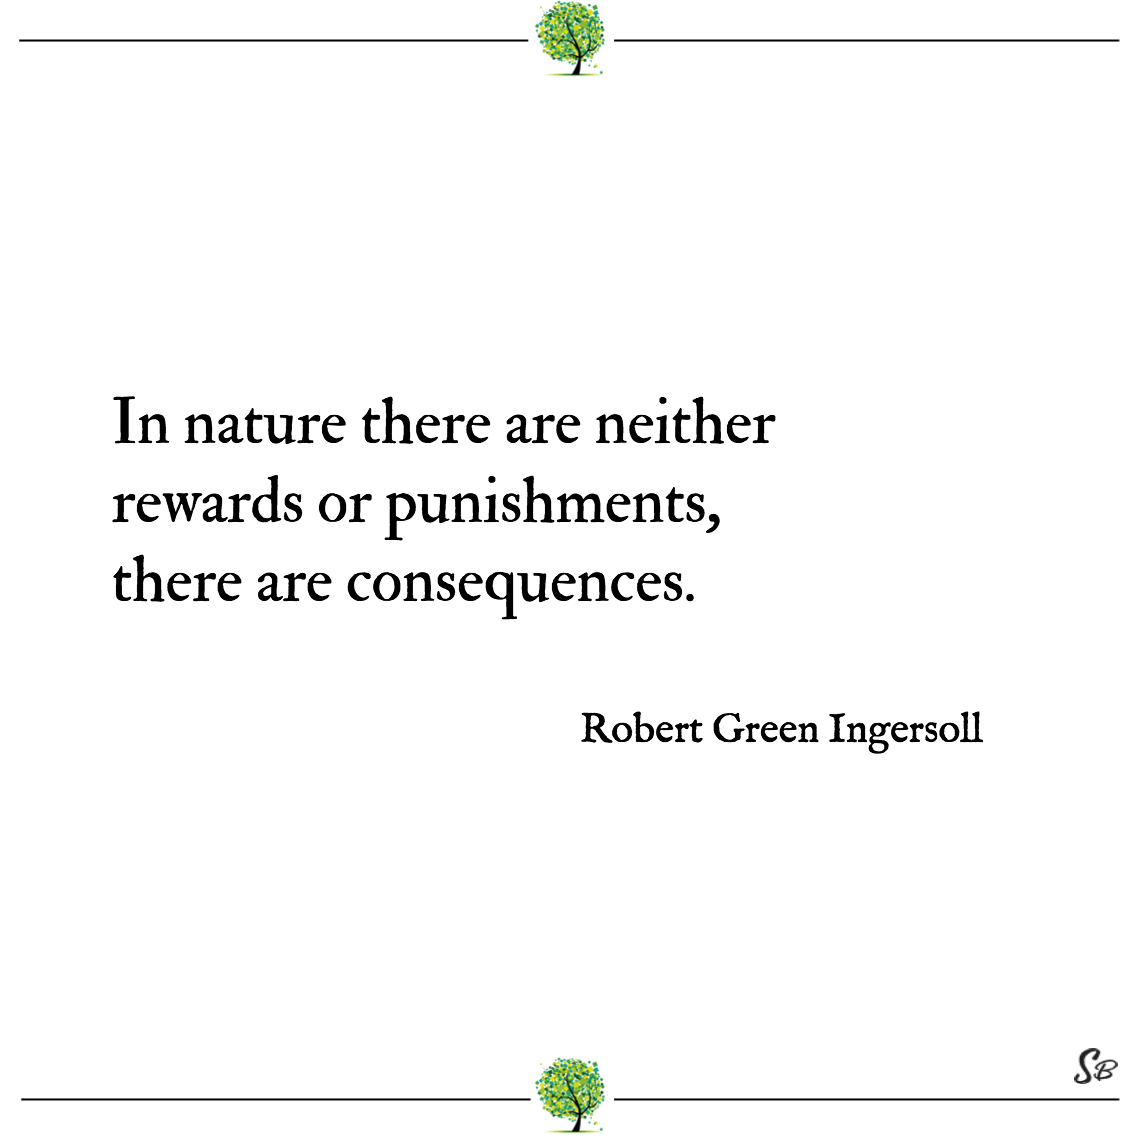 In nature there are neither rewards or punishments, there are consequences. robert green ingersoll